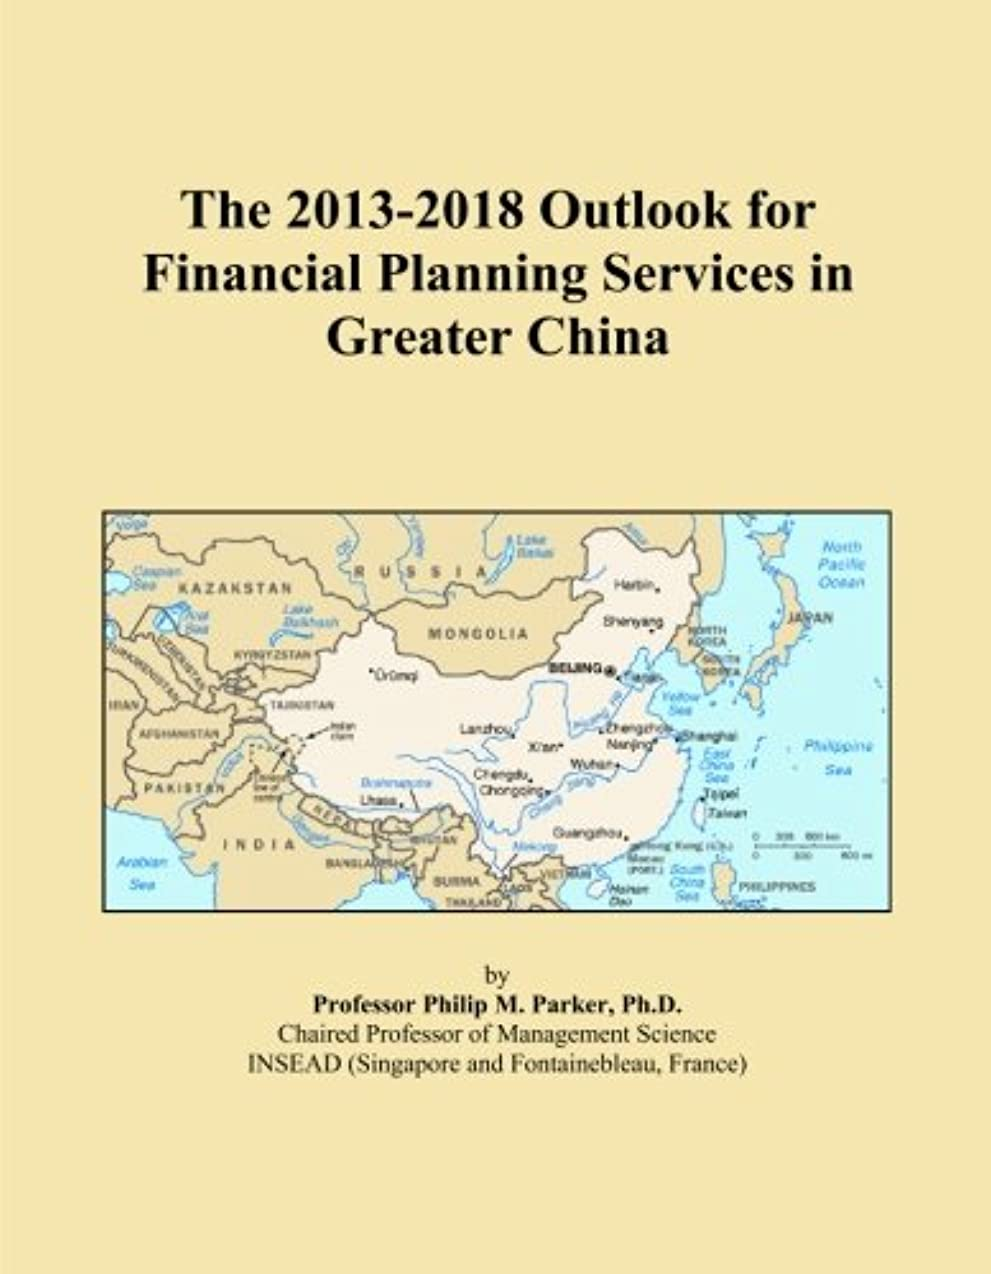 階層薬局注ぎますThe 2013-2018 Outlook for Financial Planning Services in Greater China